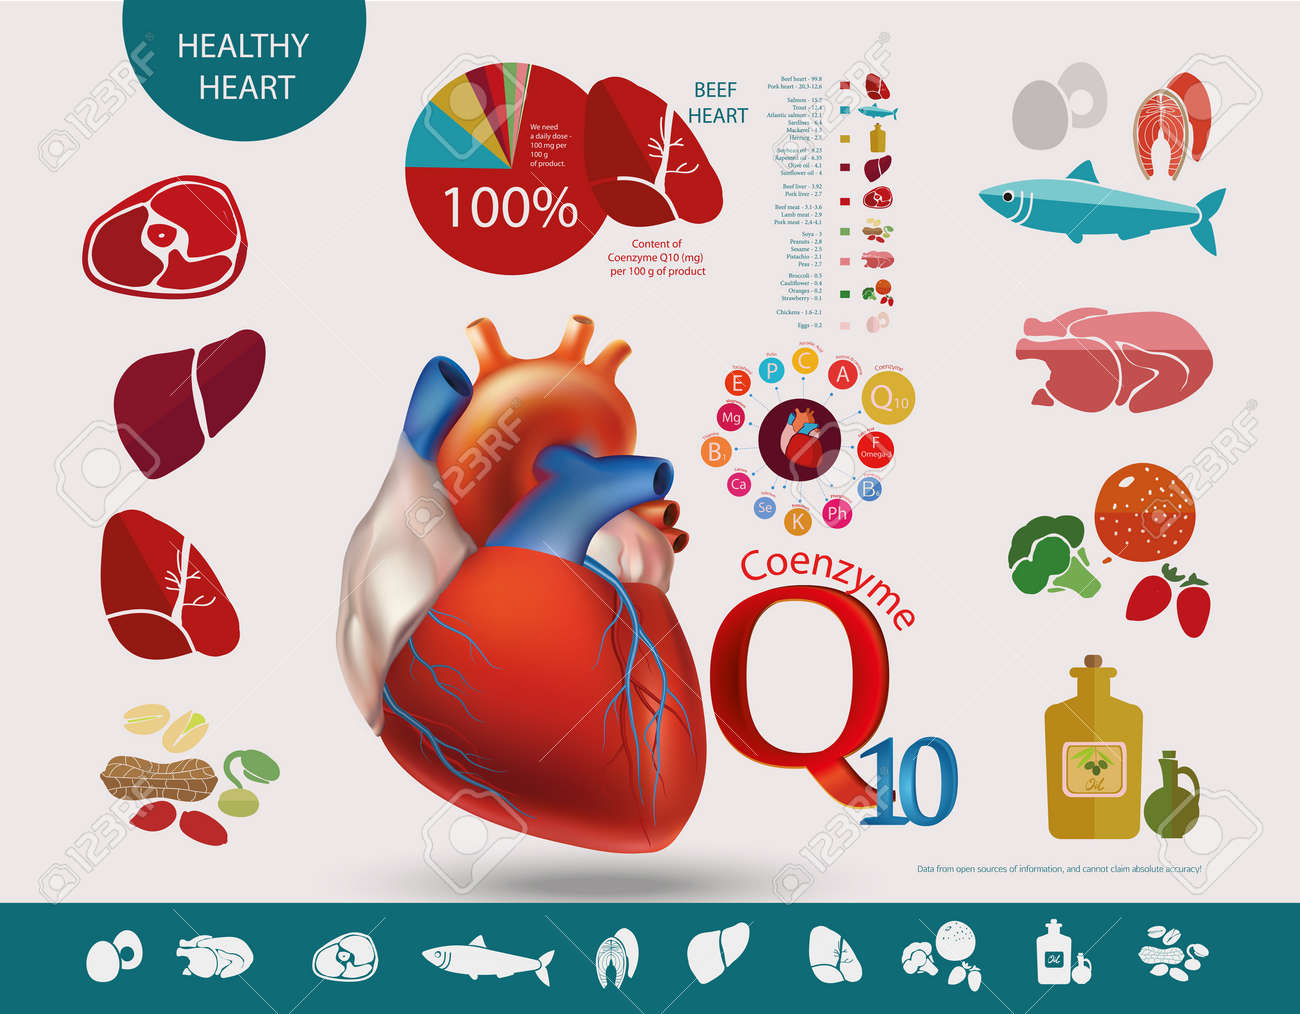 Food Products That Are Useful For The Heart And Cardiovascular